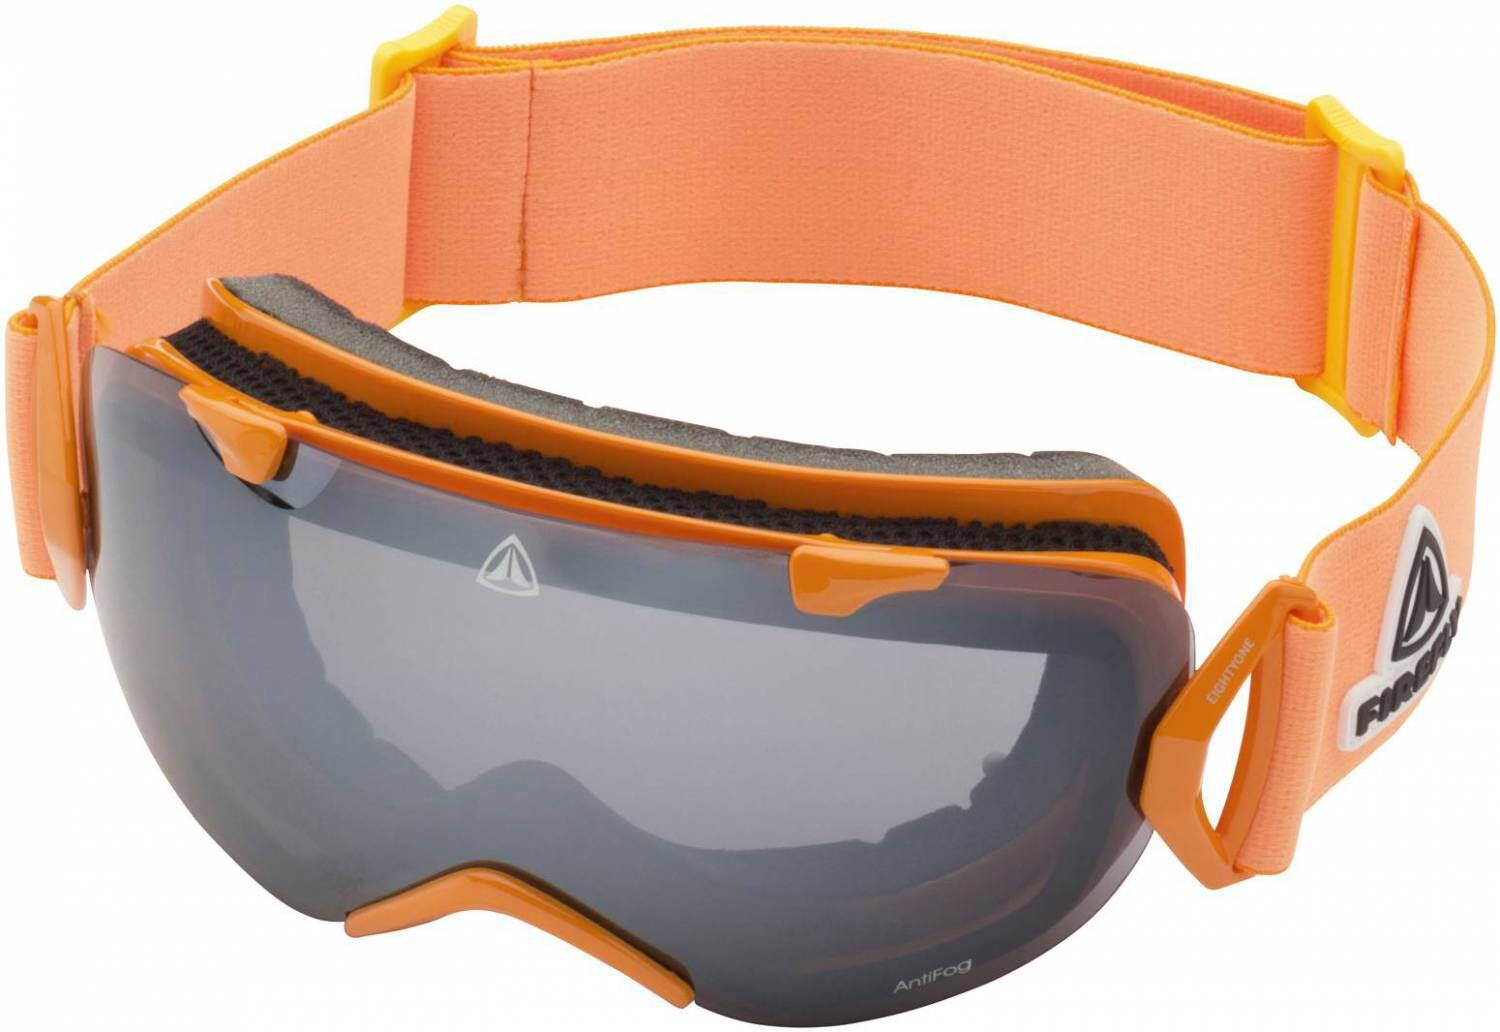 Firefly Eighty-One Skibrille